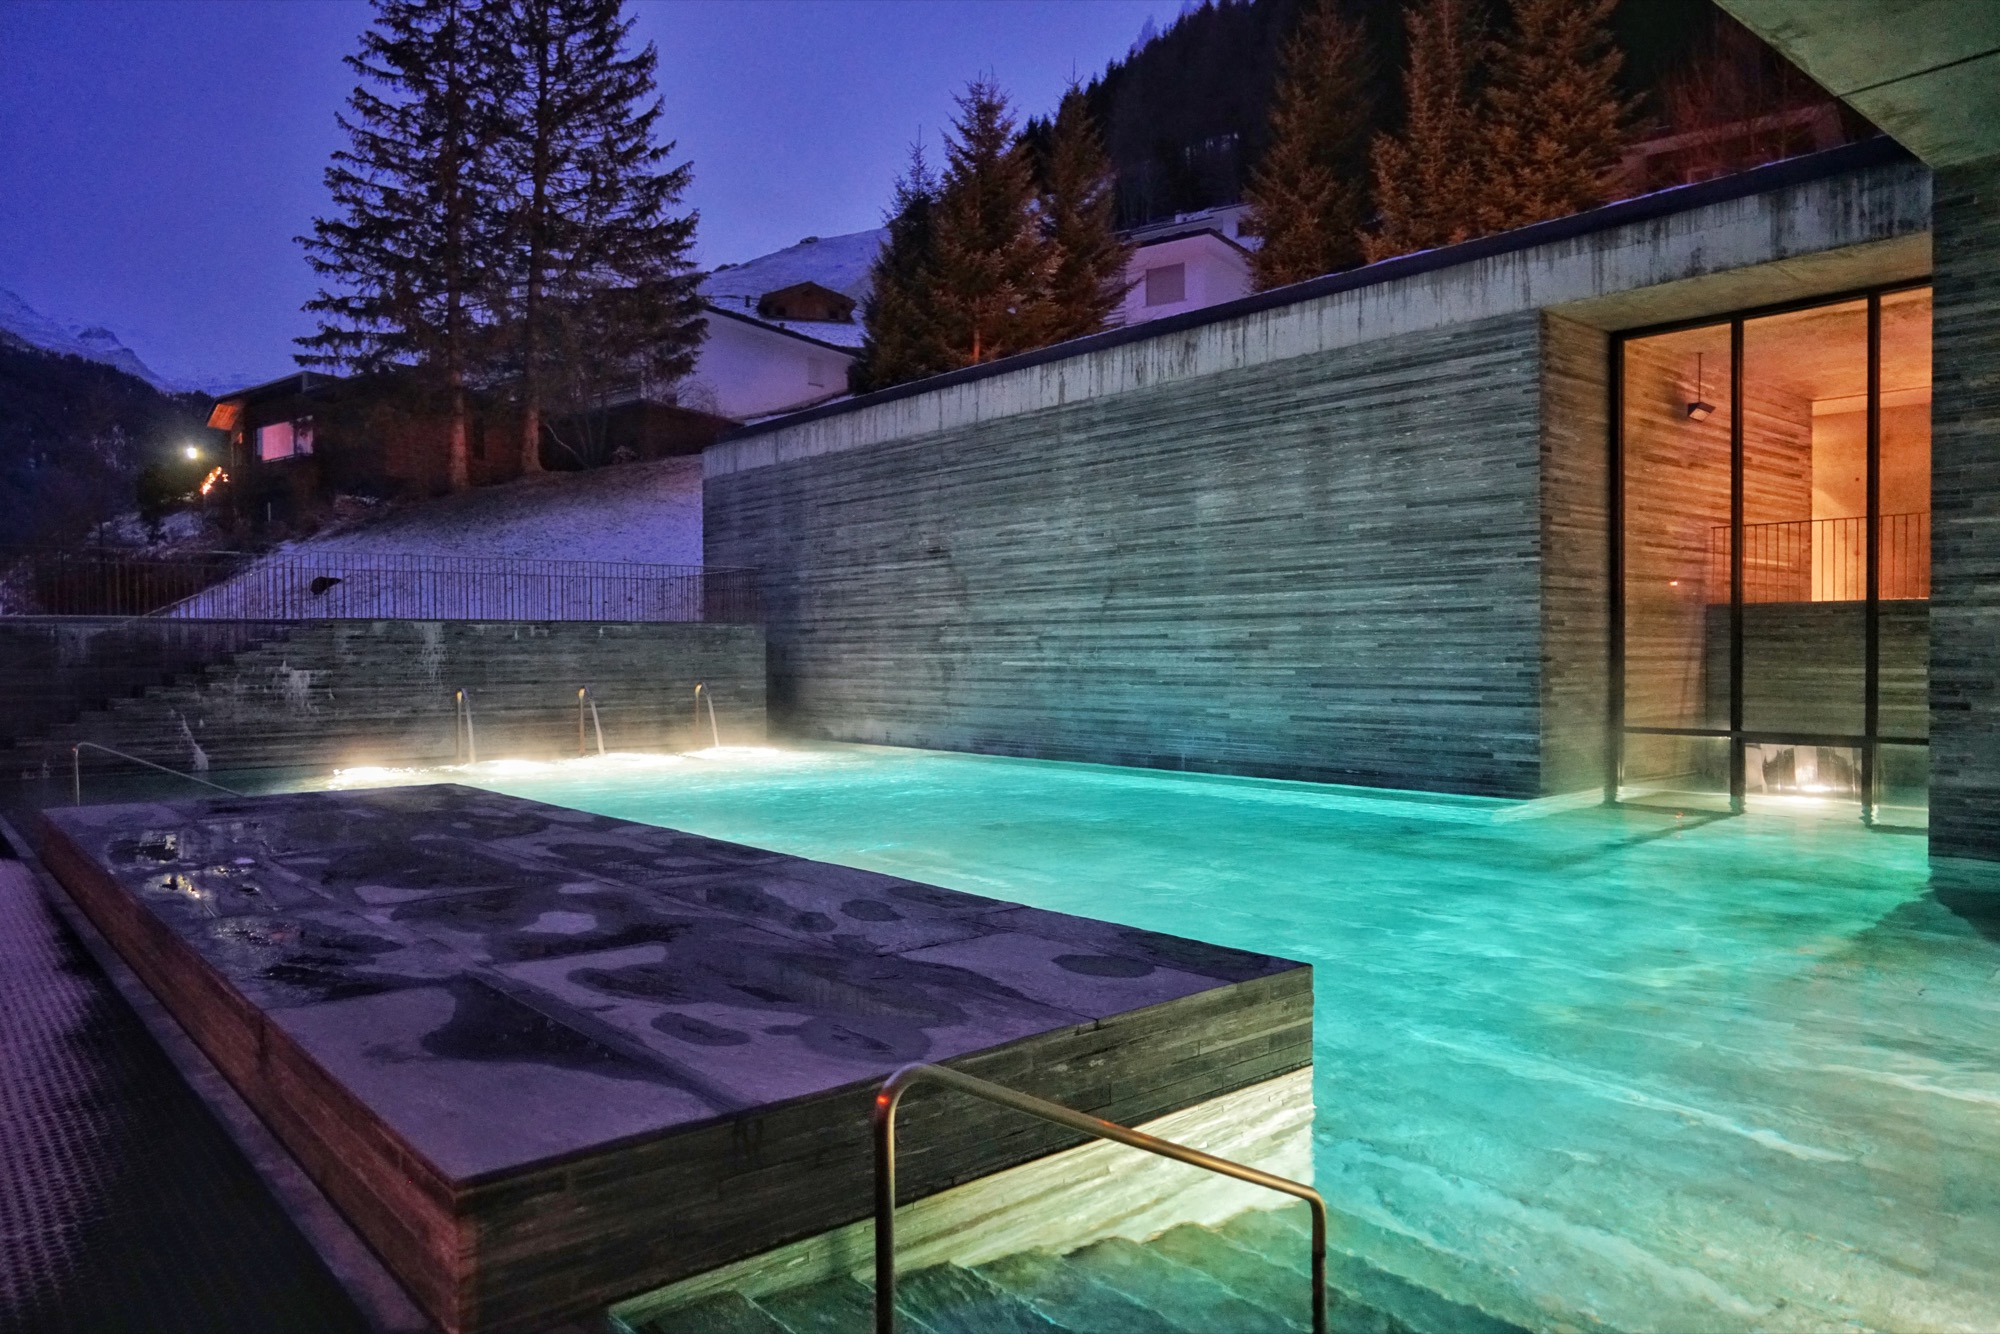 Outdoor pool at Vals thermal baths /Photo by Jonathan Ducrest